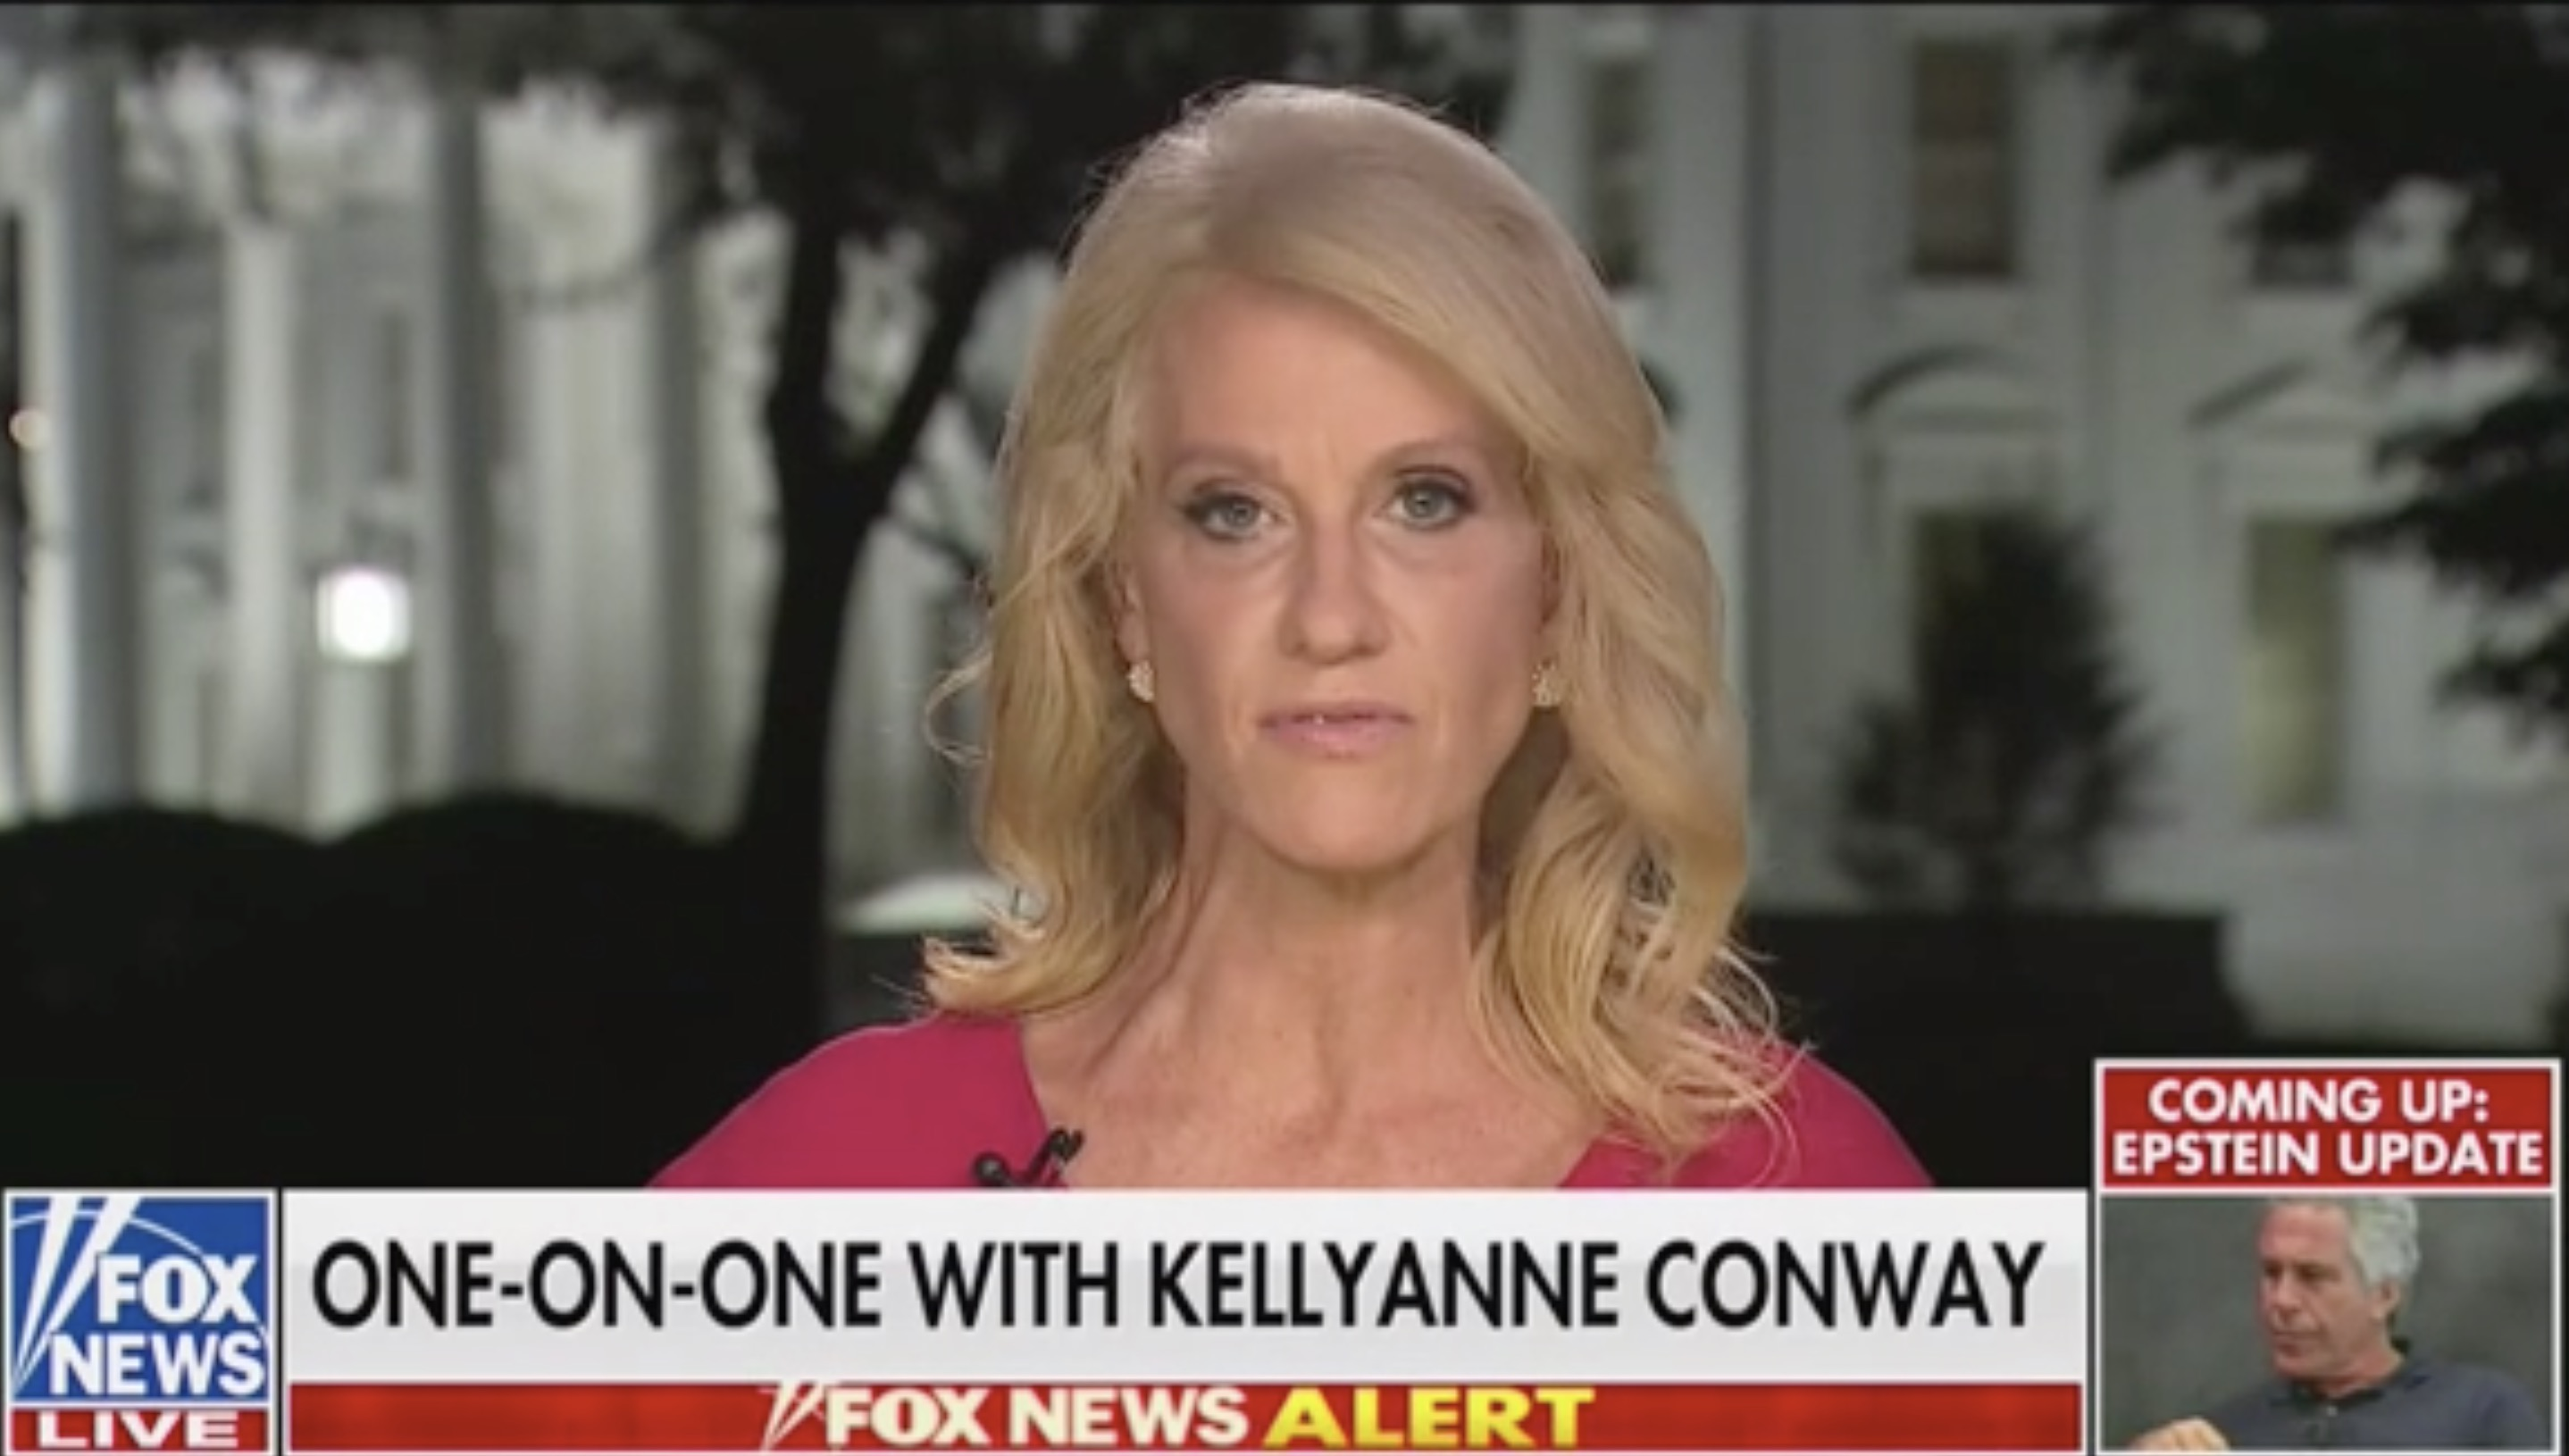 Kellyanne Conway Says She's Not Worried About Defying Congressional Subpoena: 'I've Done Nothing Wrong'